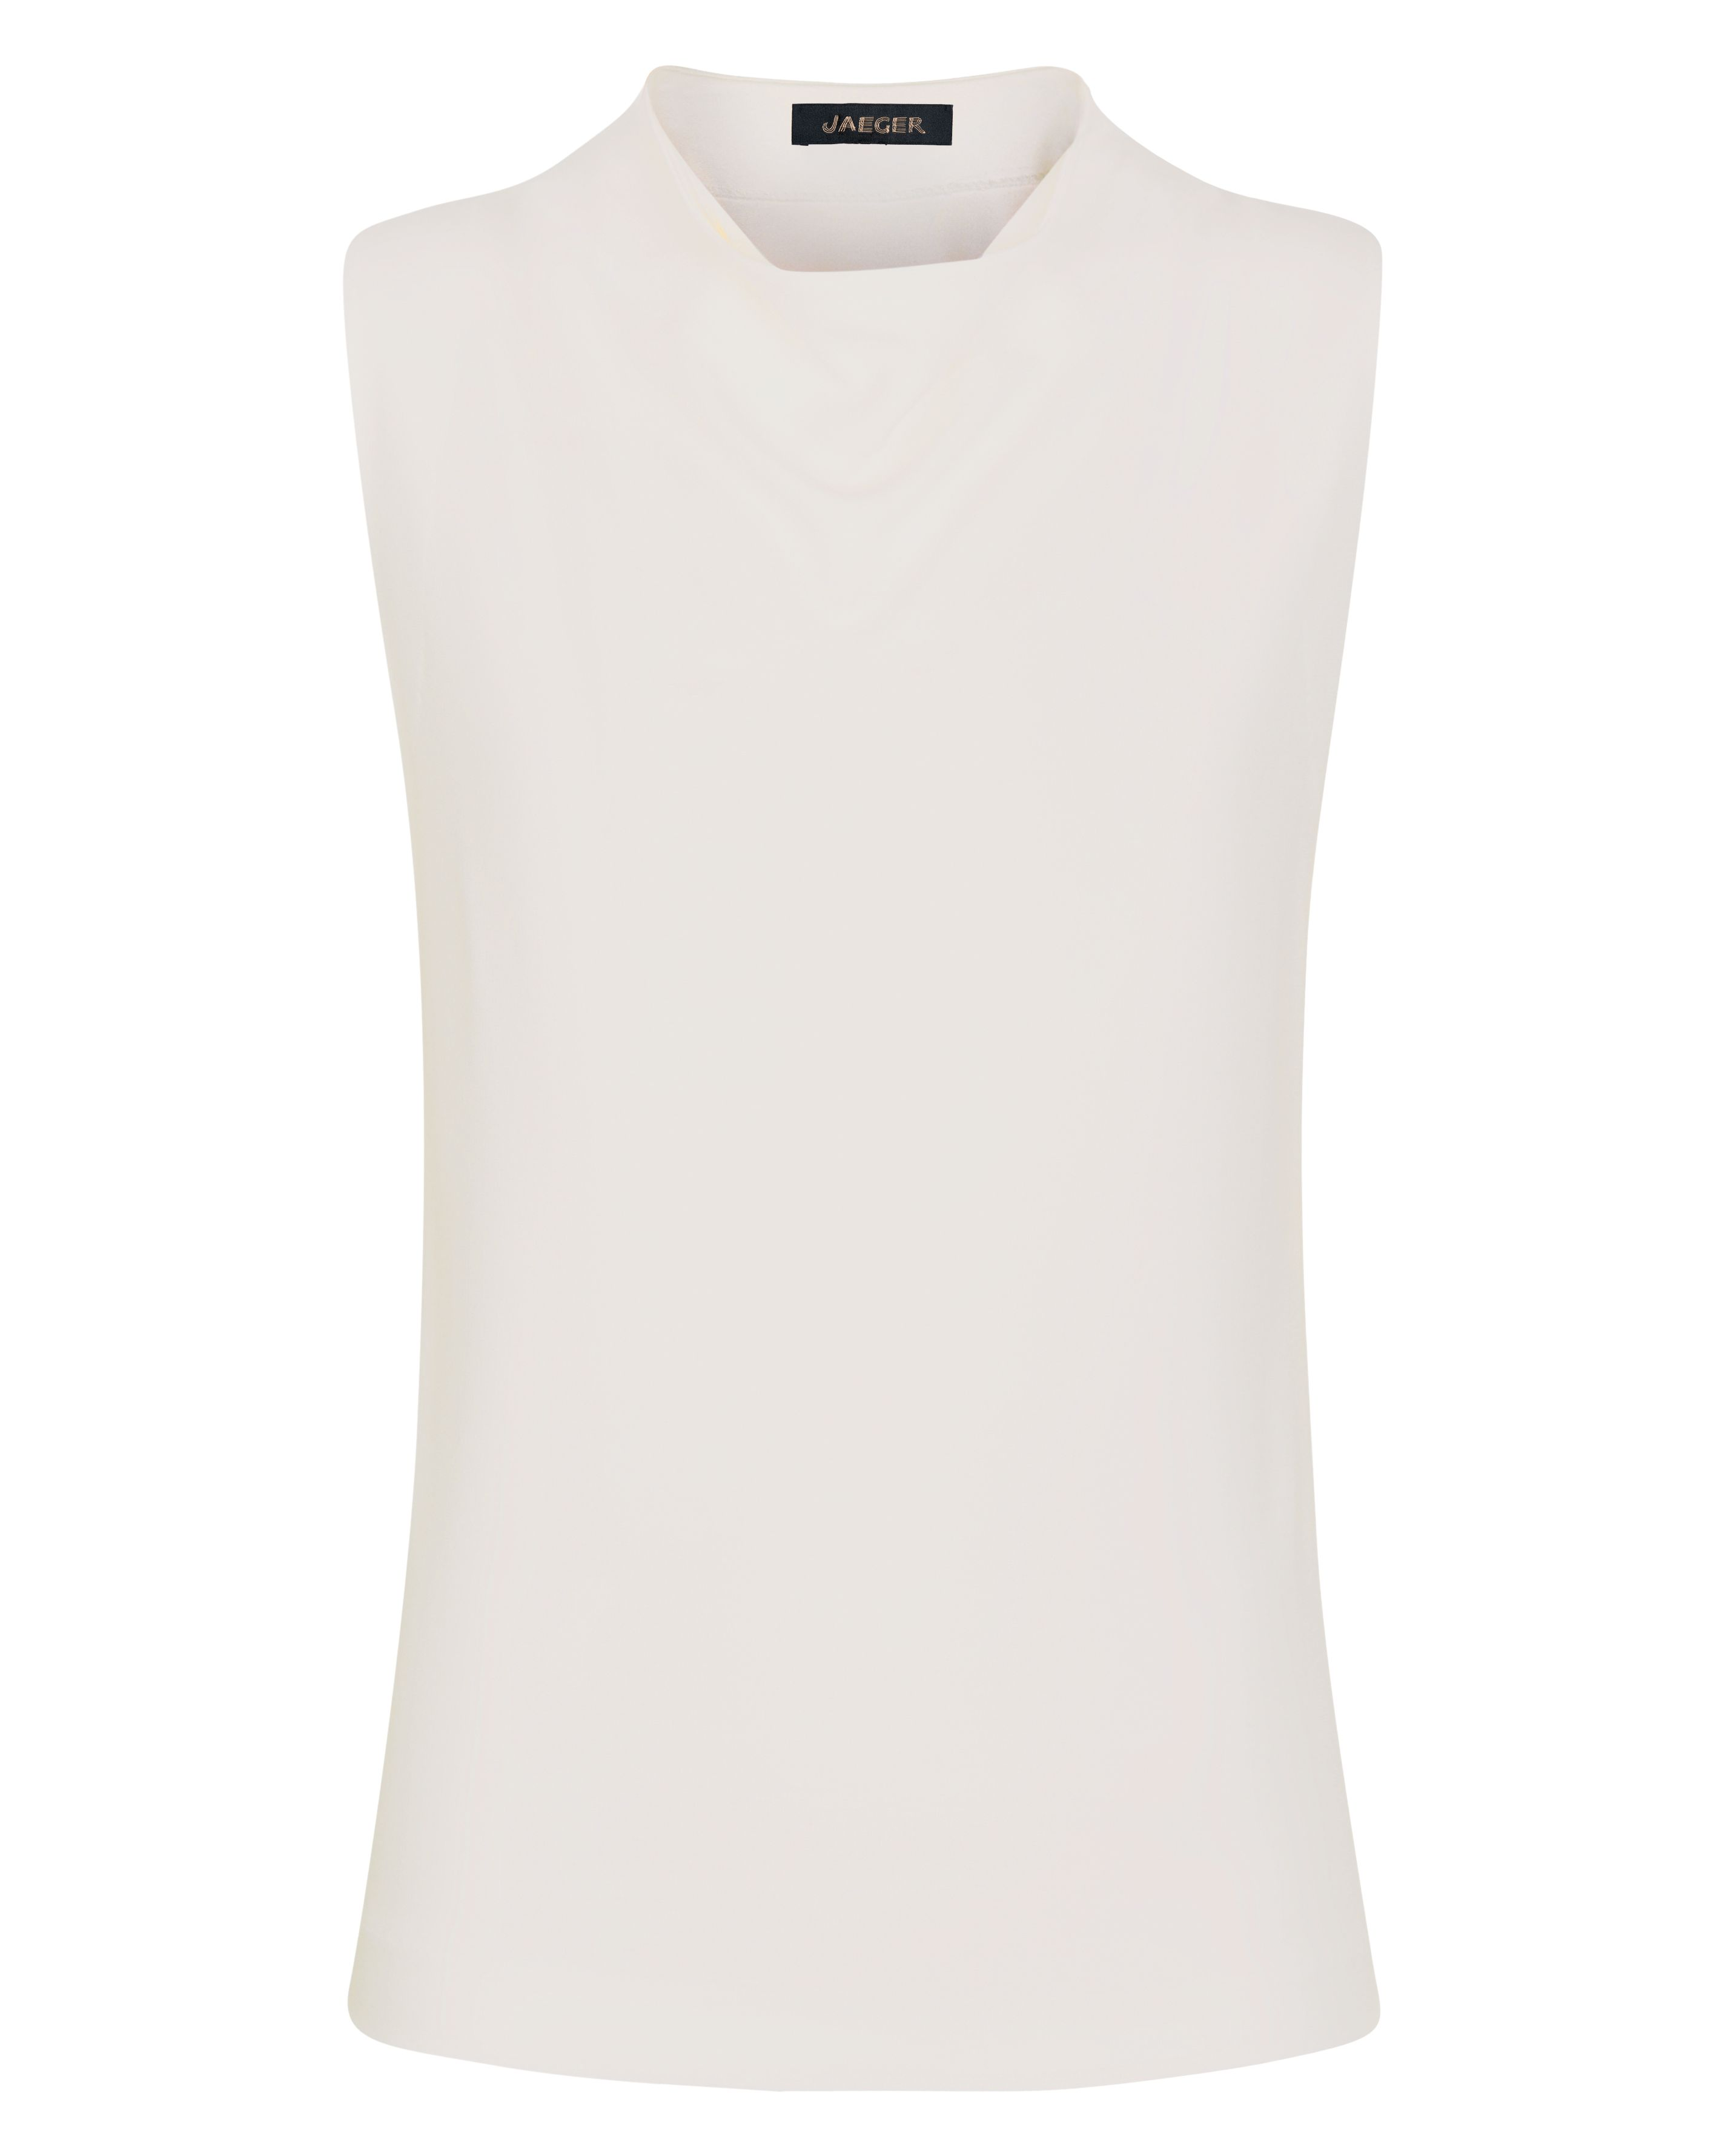 Jaeger Jersey Drape Neck Top, White